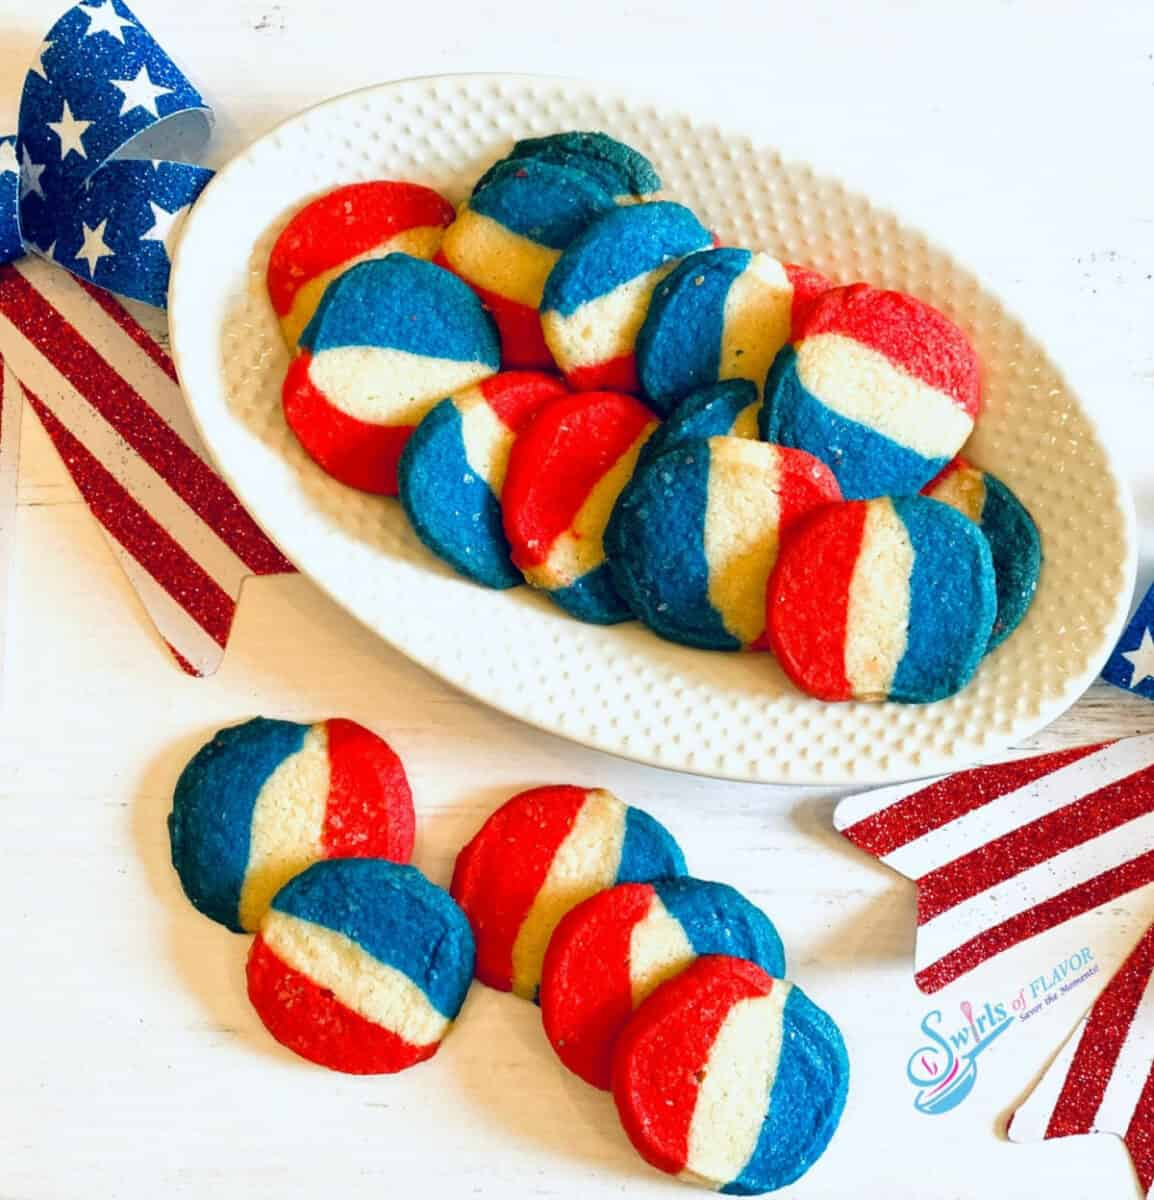 Red, white and blue striped sugar cookies on a white plate.